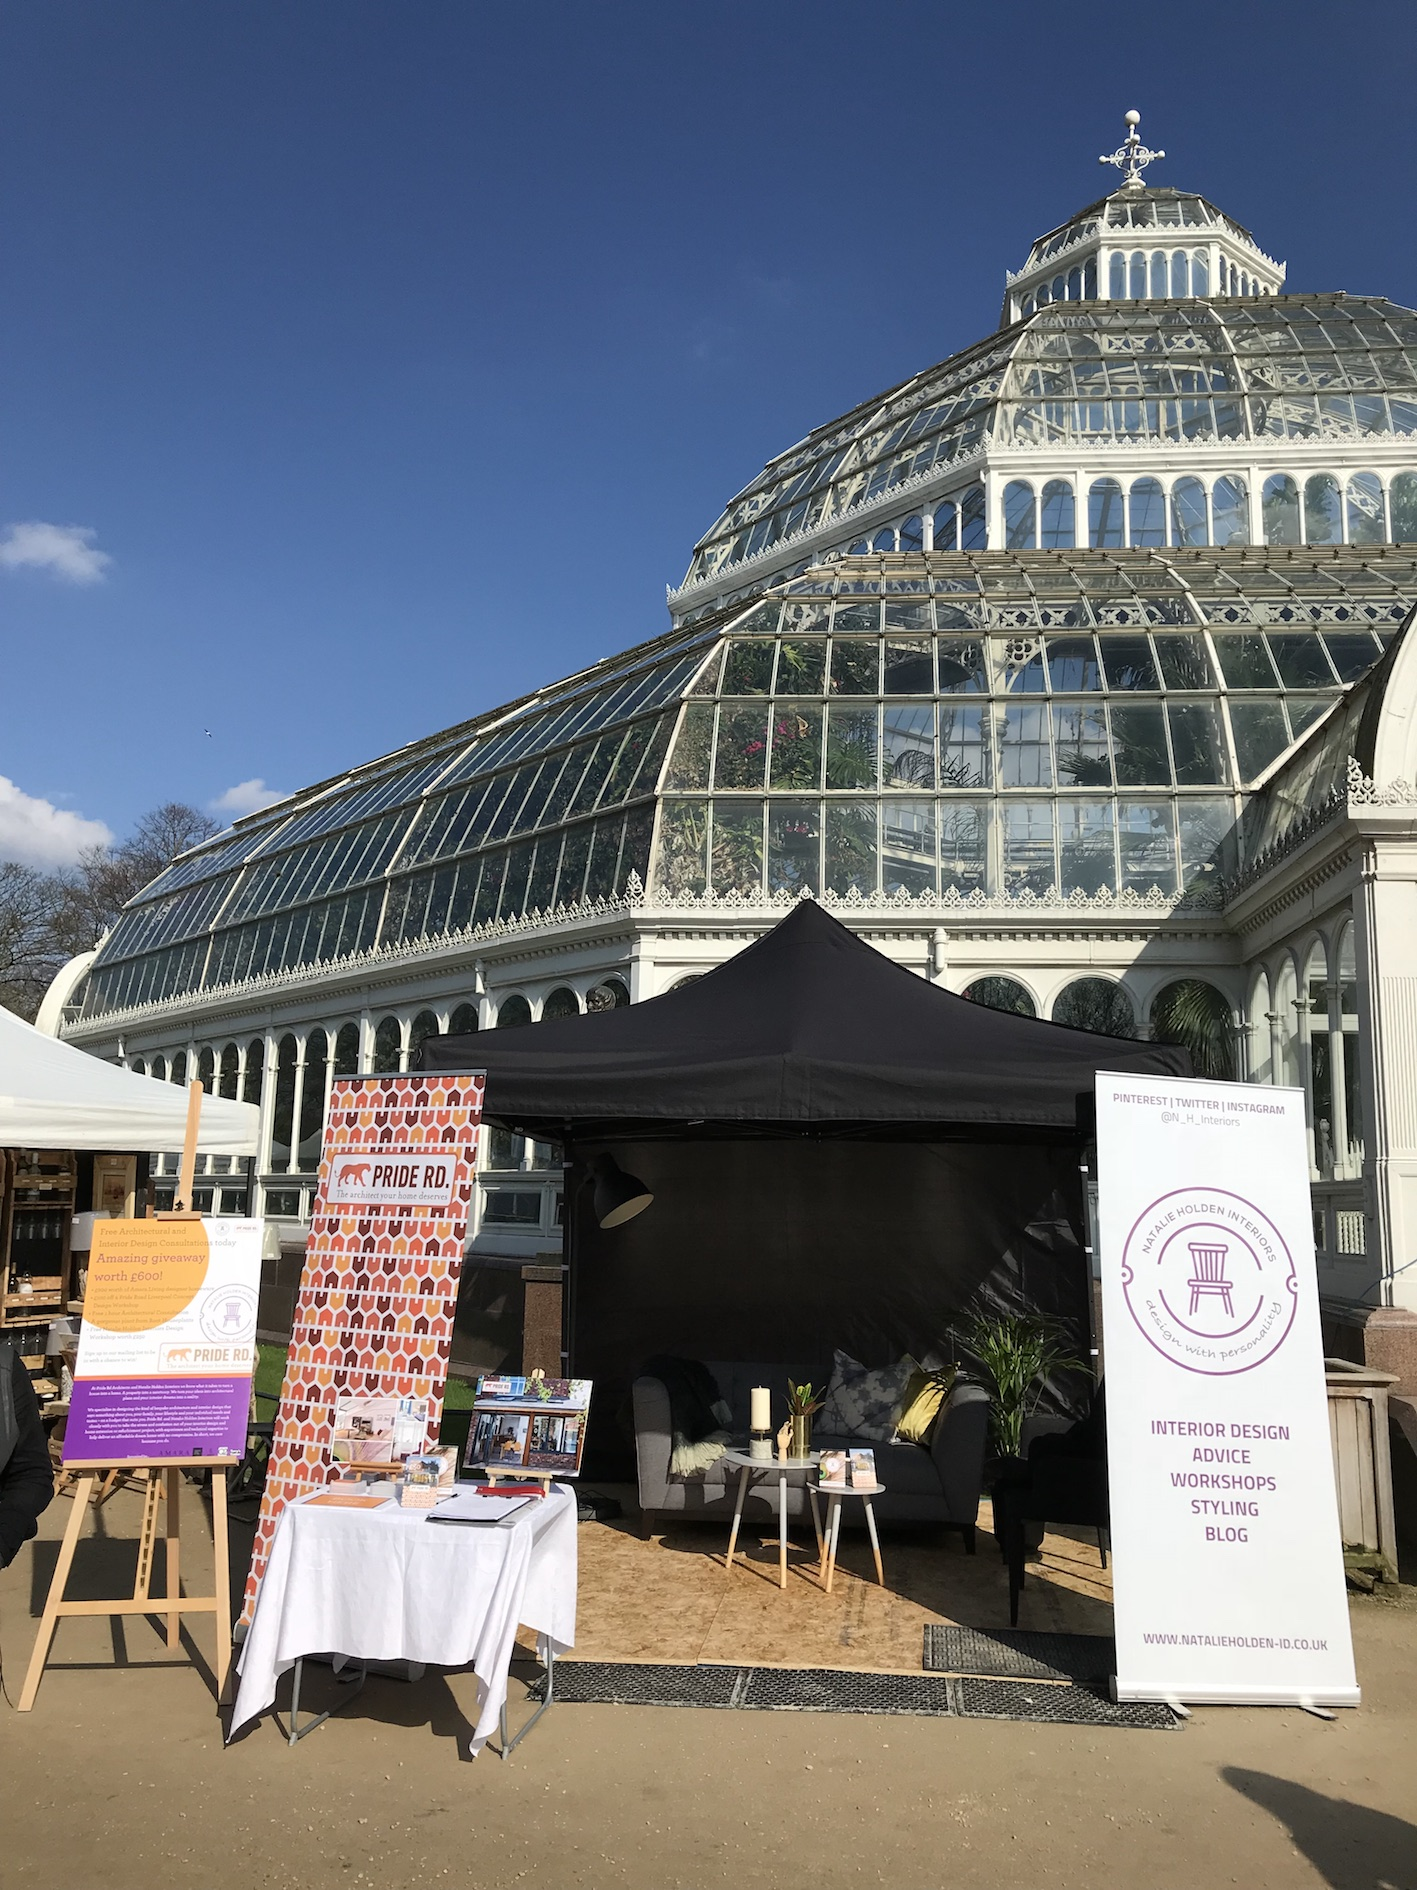 pop-up in the palm house